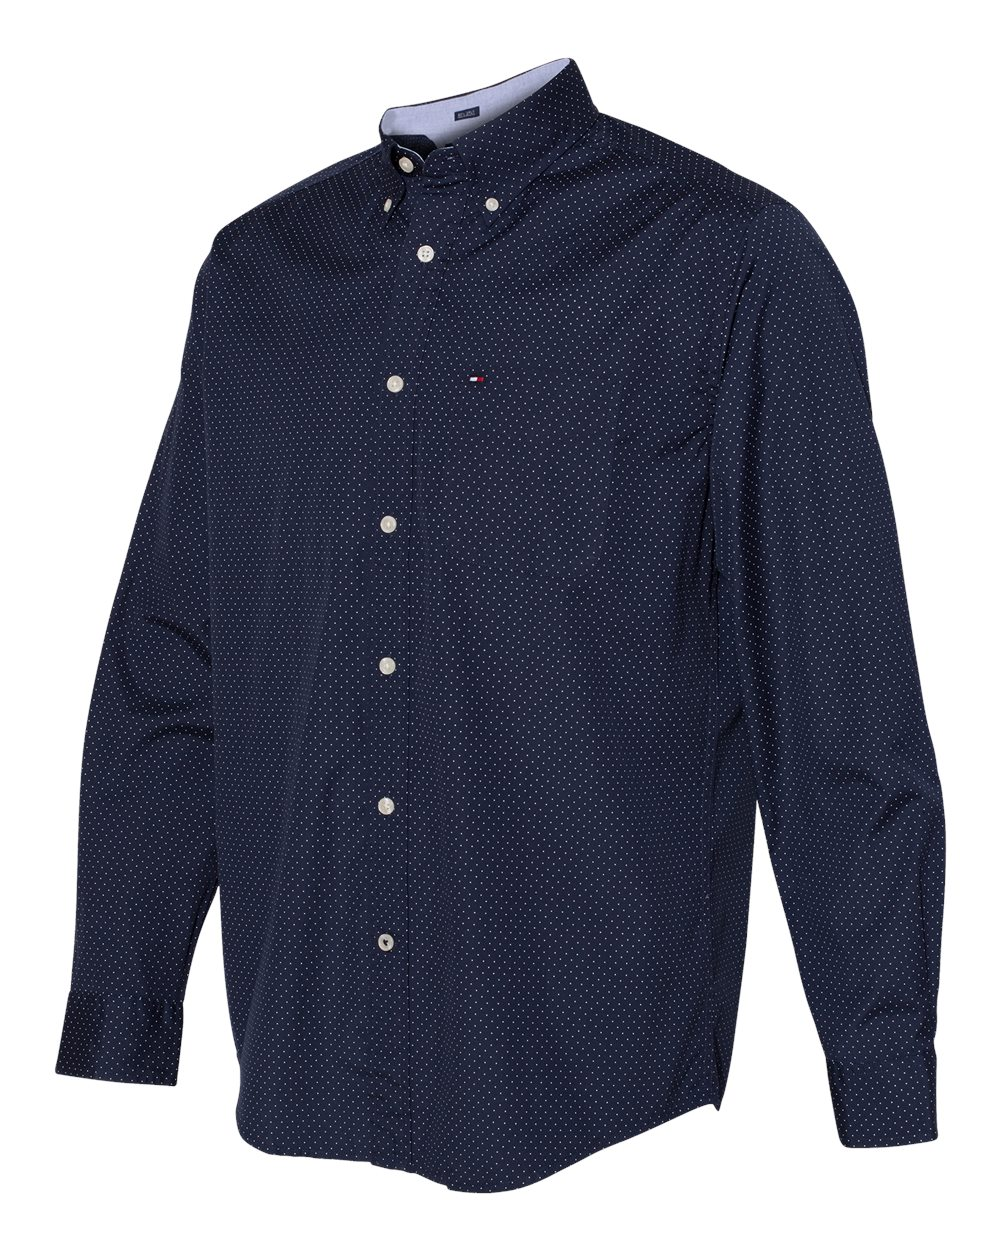 Tommy Hilfiger 13H4417 - 100s Two-Ply Polka Dot Shirt